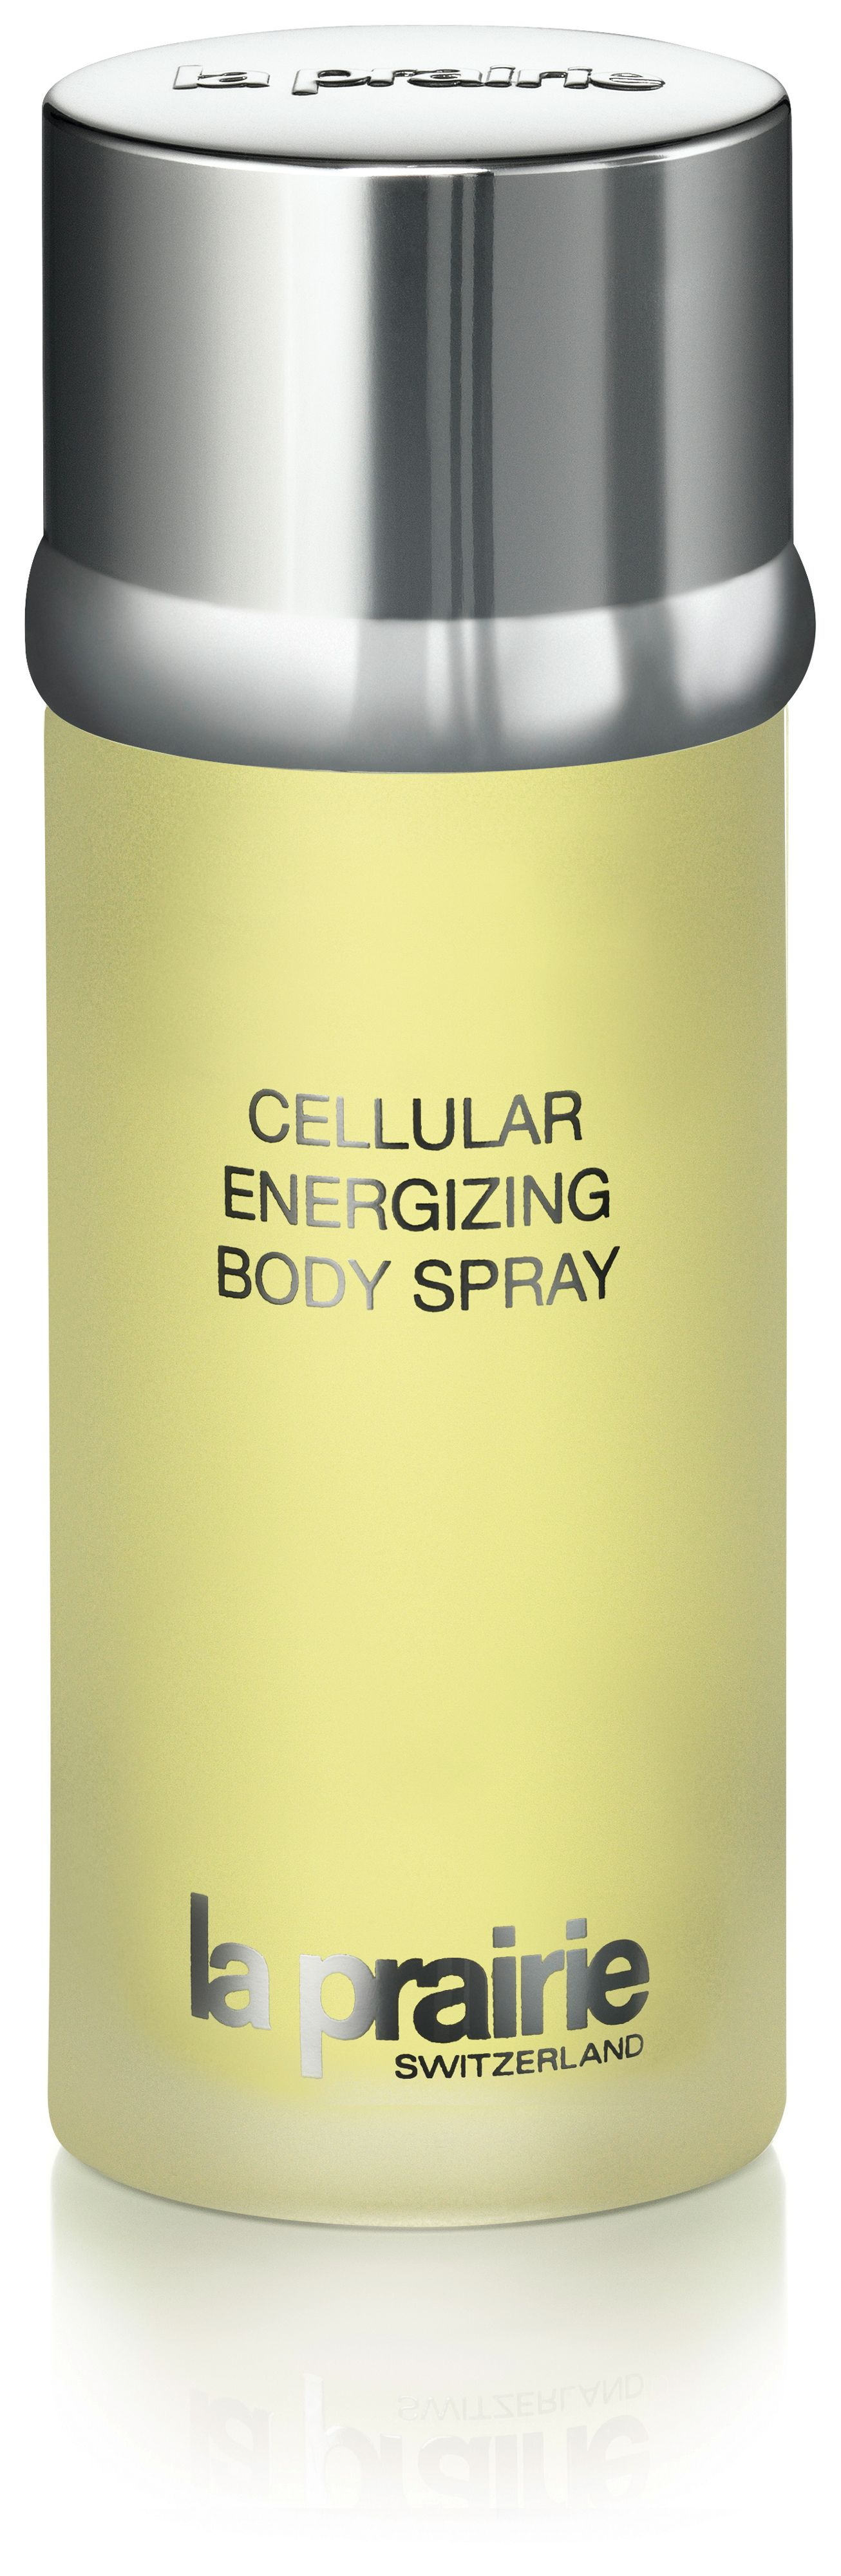 Cellular Energizing Body Spray 50ml